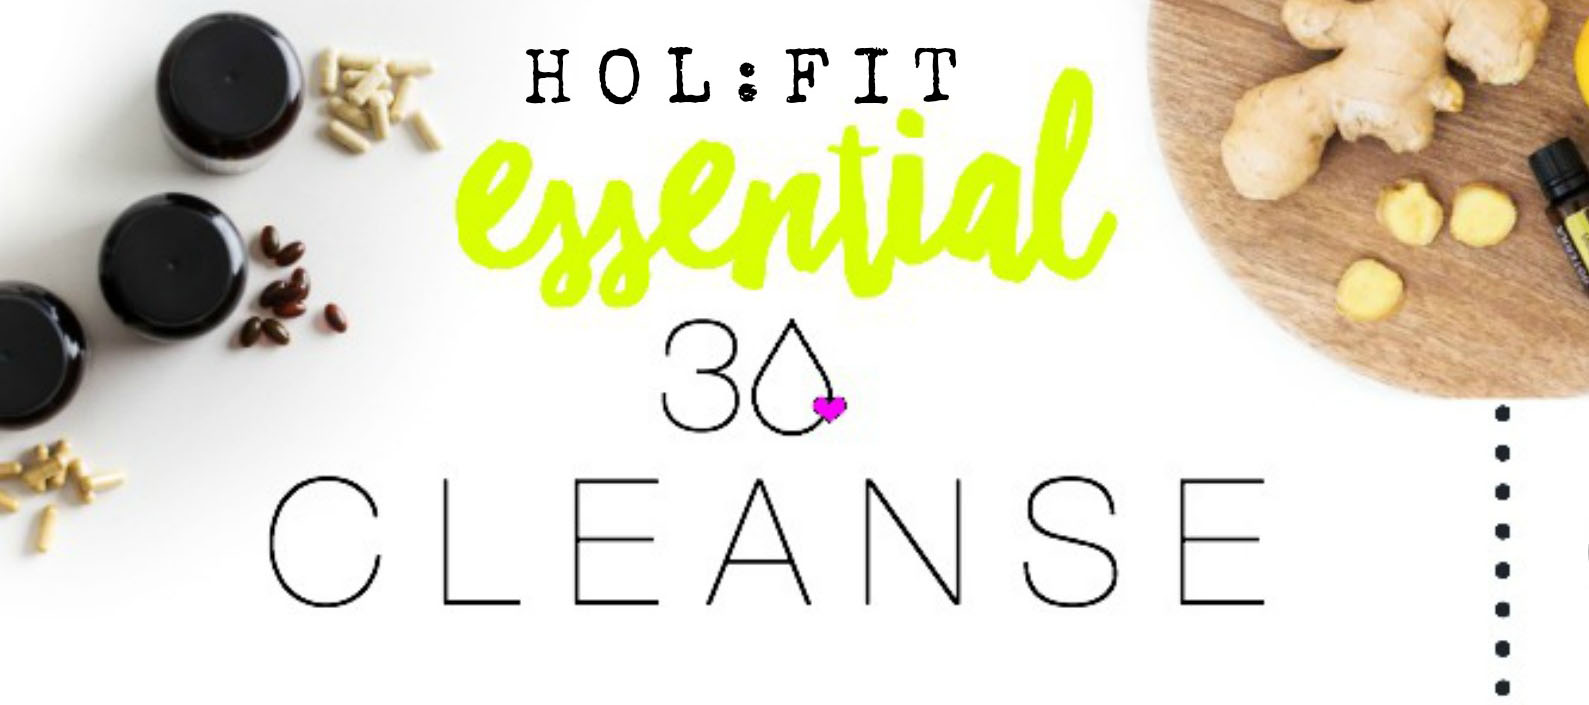 Hol-Fit 30 day cleanse image